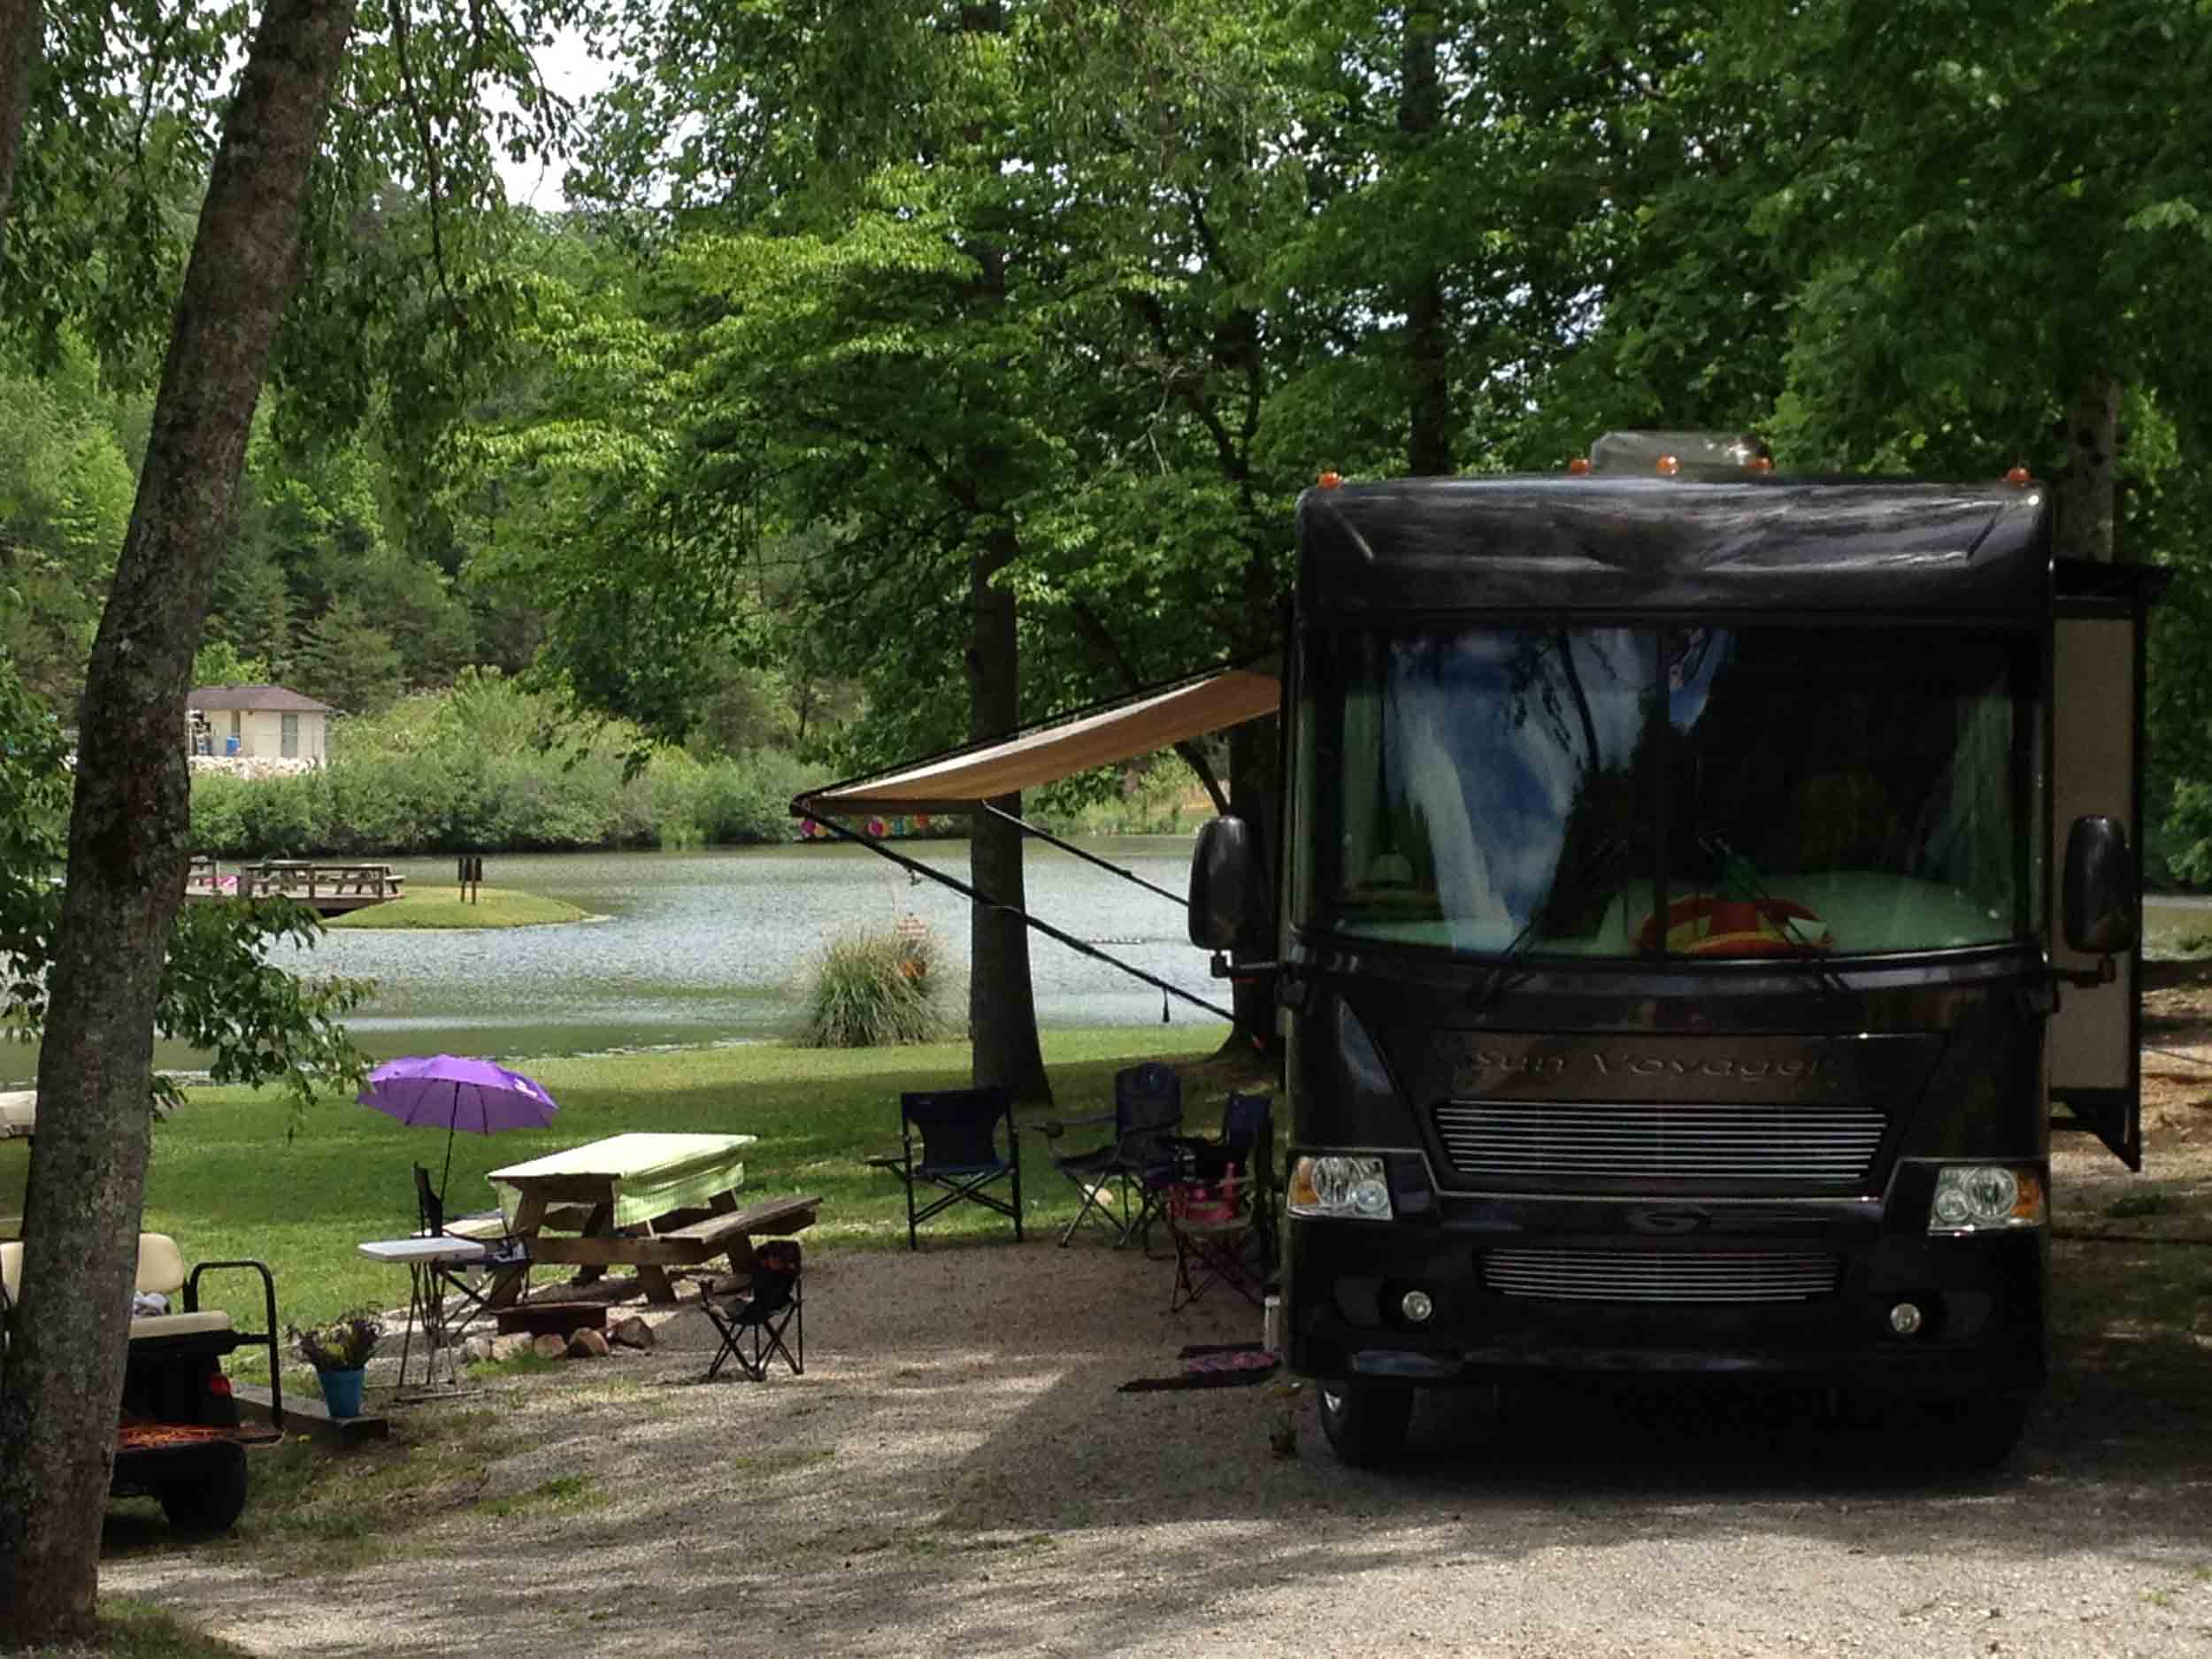 camper with awning at campsite